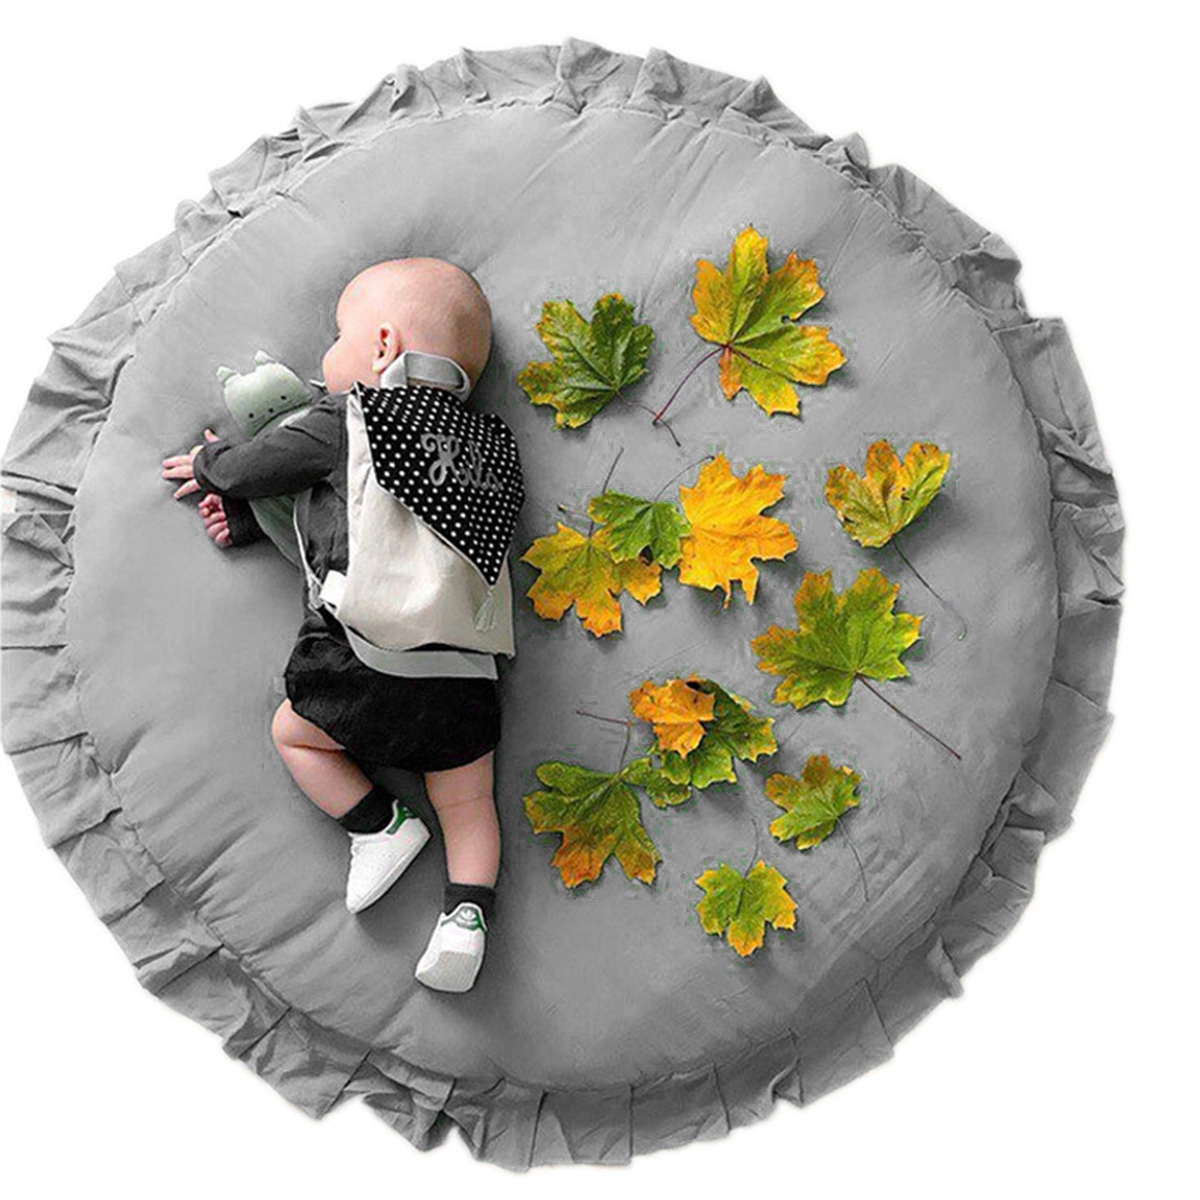 105CM Round Soft Baby Play Mats Cotton Padded Crawling Mats Play Carpet Girls Boys Kids Room Floor Rugs Nordic Decoration Props